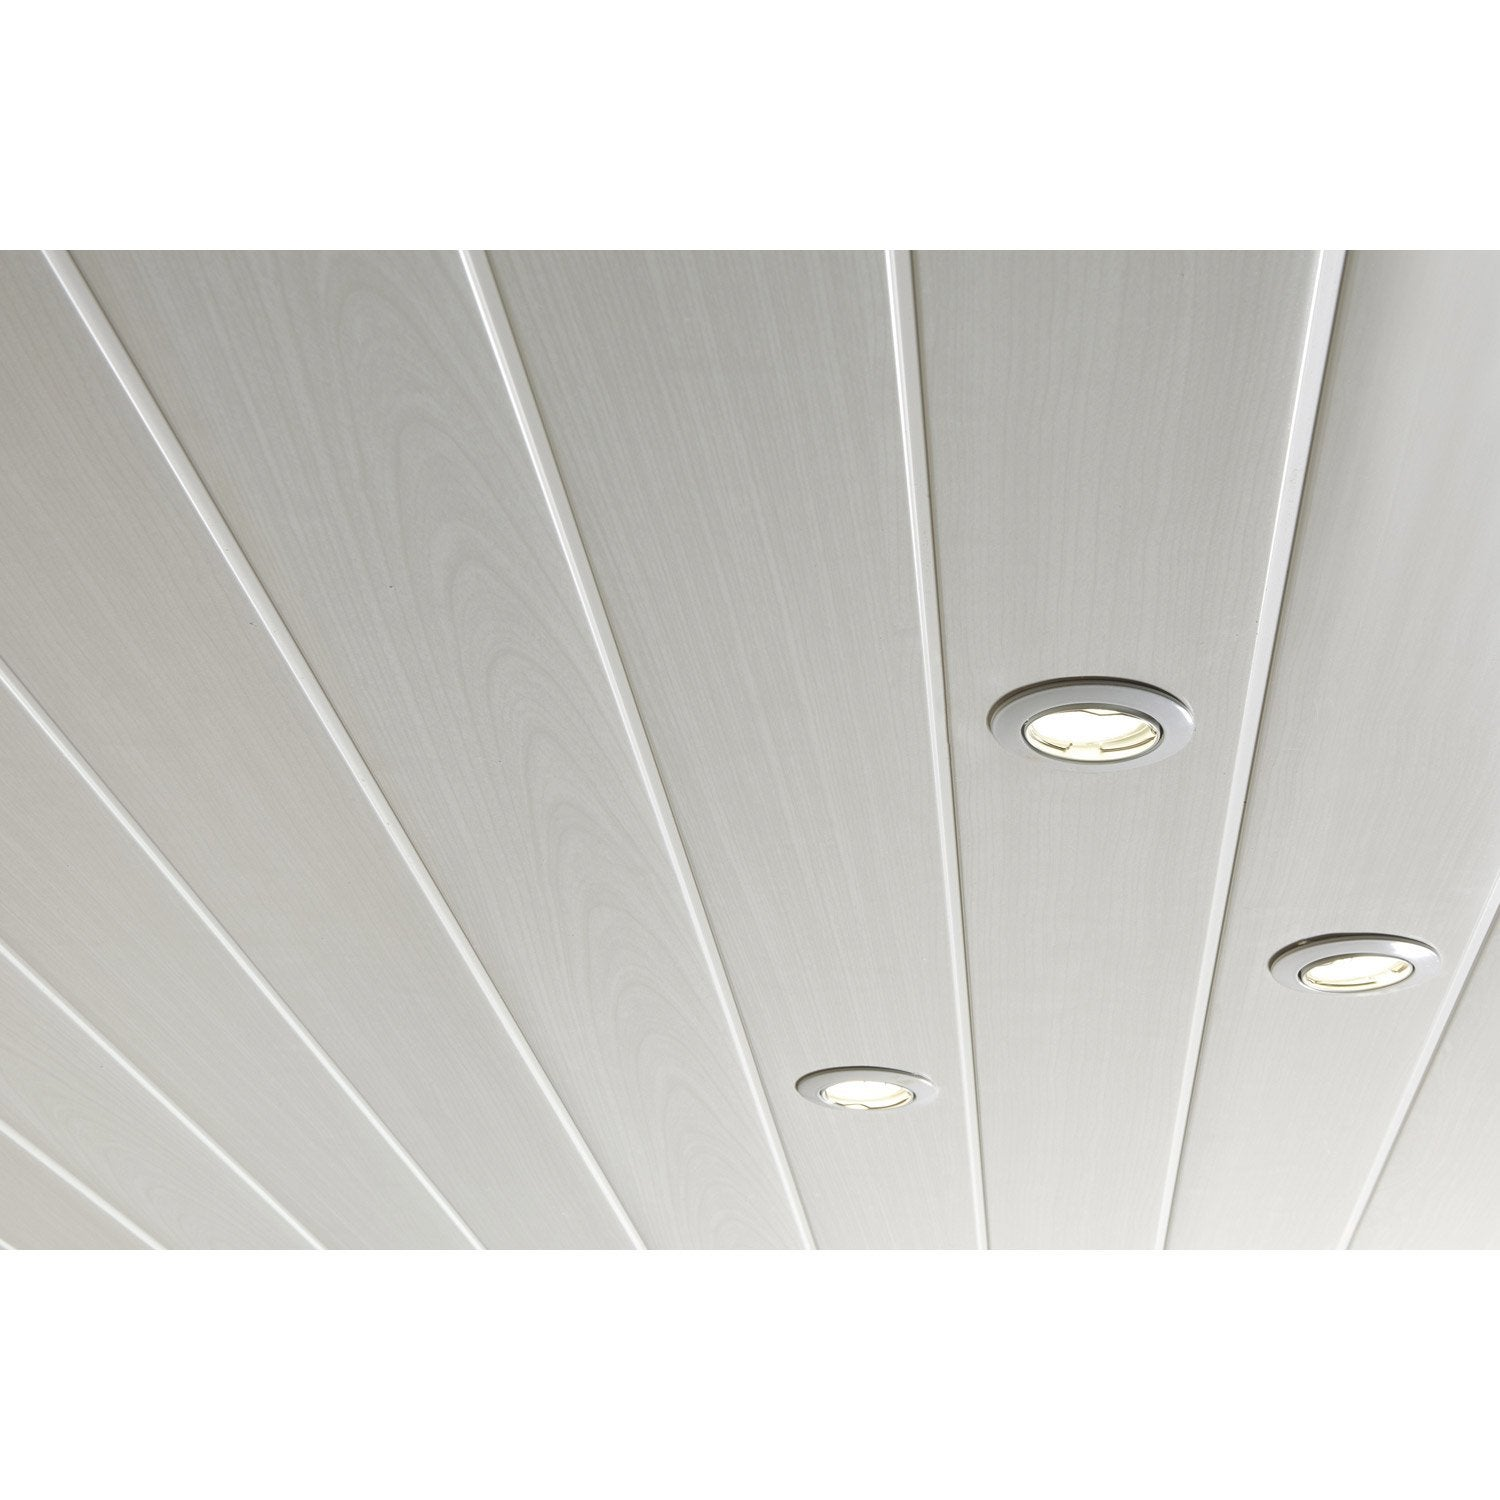 Pose de lambris pvc en plafond tours prix travaux for Pose lambri pvc plafond